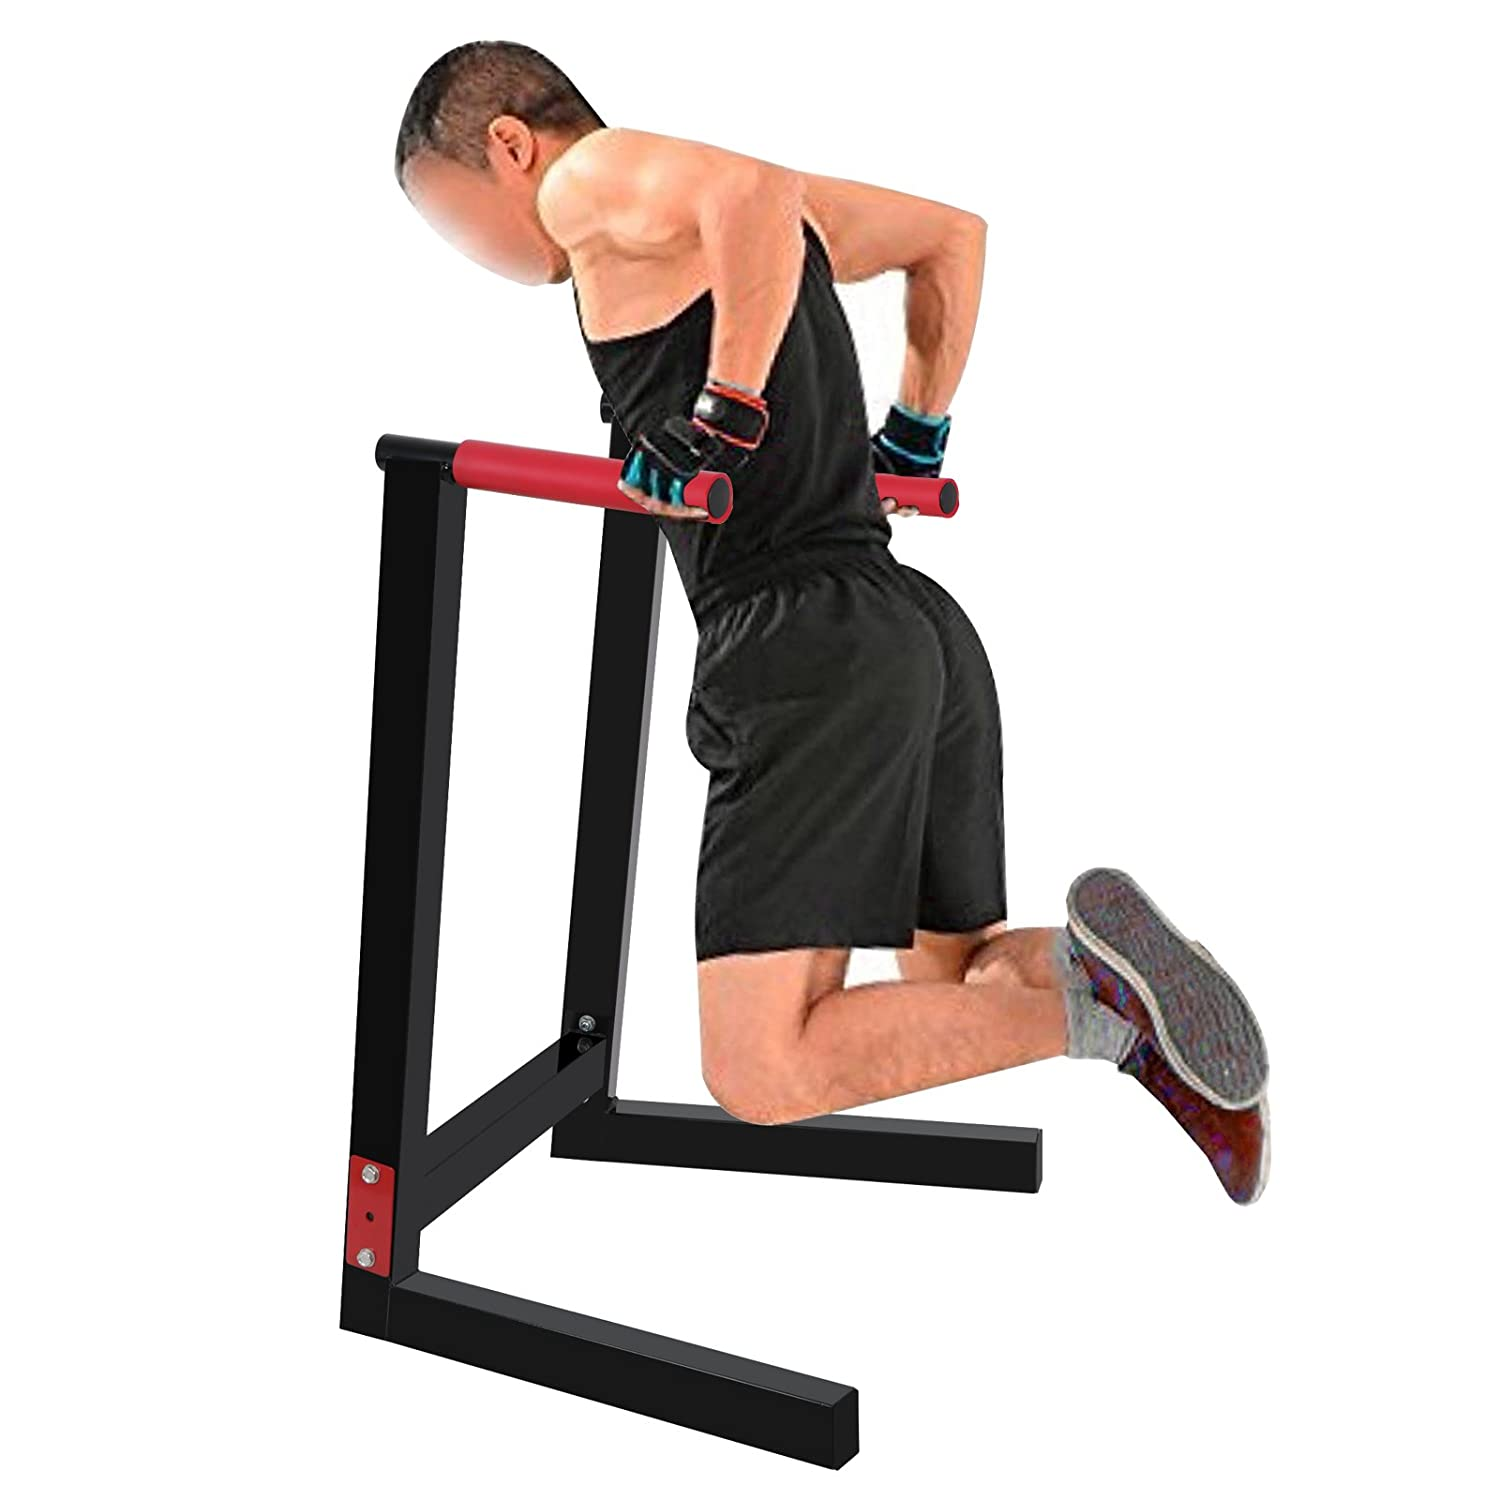 F2C Deluxe Multifunction Heavy Duty Bicep Tricep Exercise Training Parallel Bar Dipping Station Bars Self Standing Dip Bar Stand W Red Rubber Padded Grips